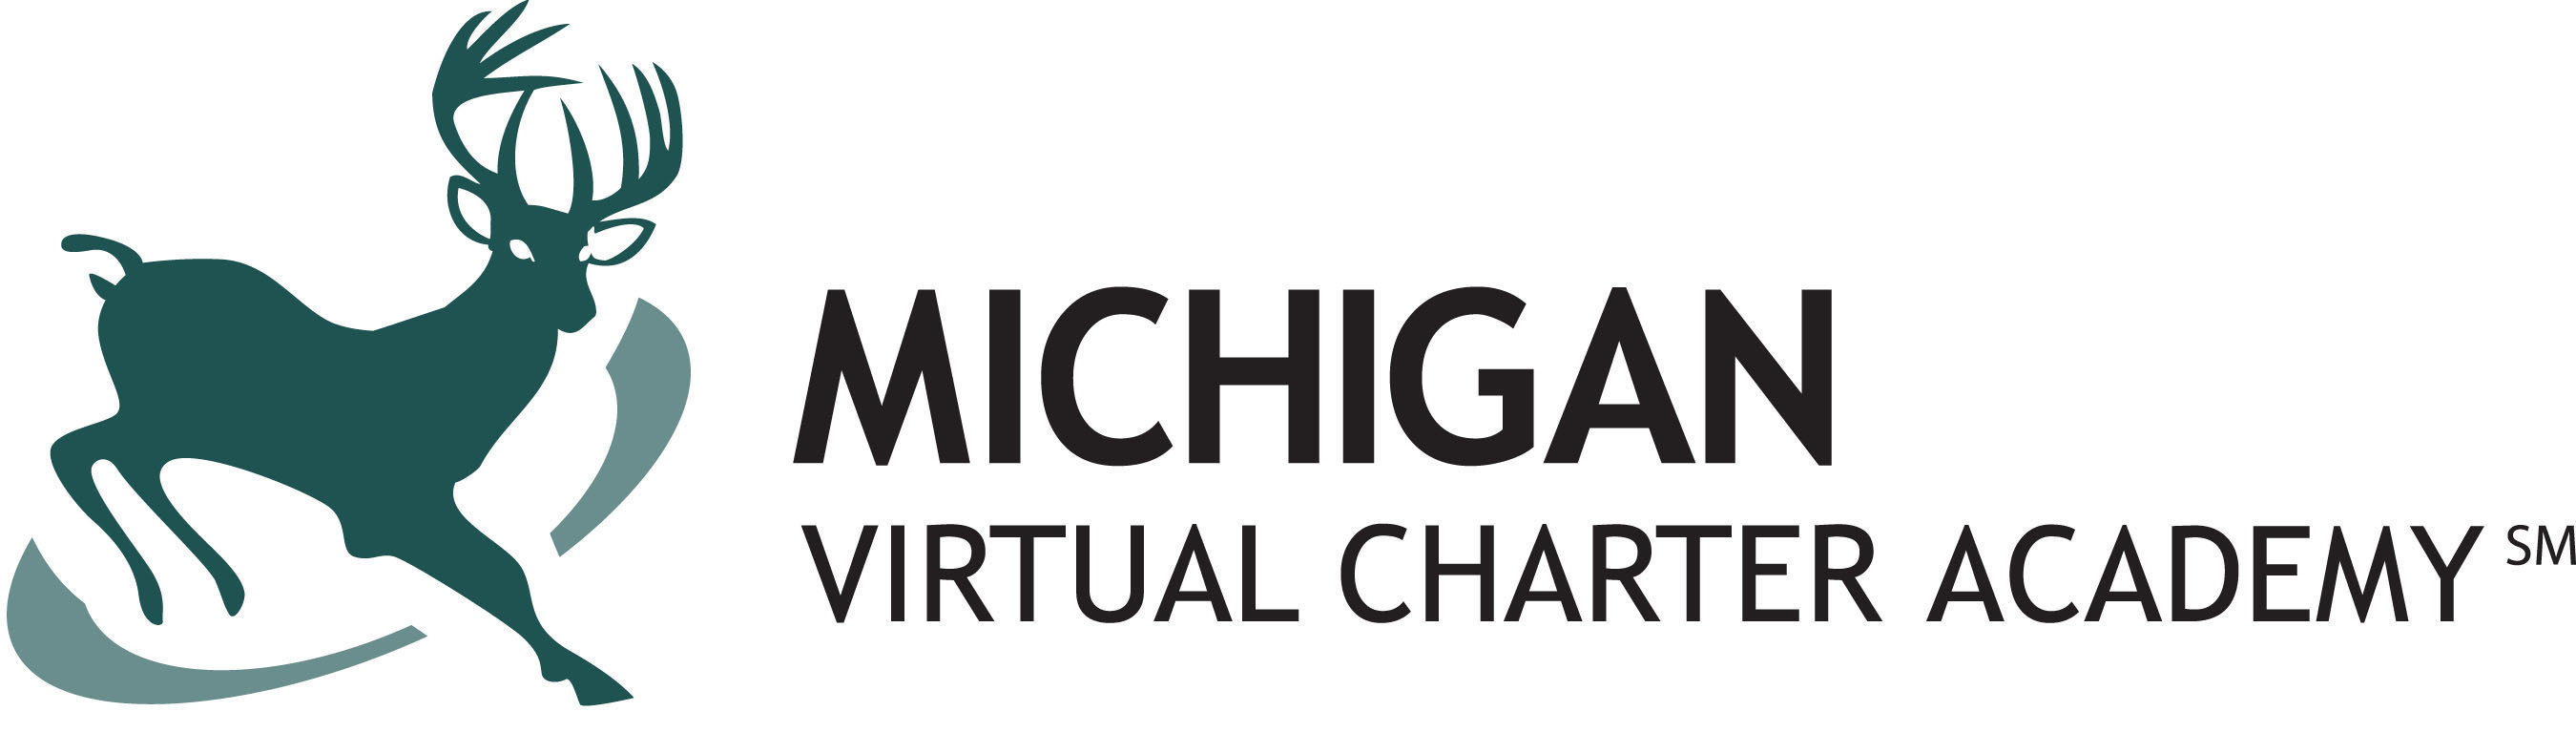 Michigan Virtual Charter Academy Welcomes K-12 Students to Enroll for 2015-2016 School Year